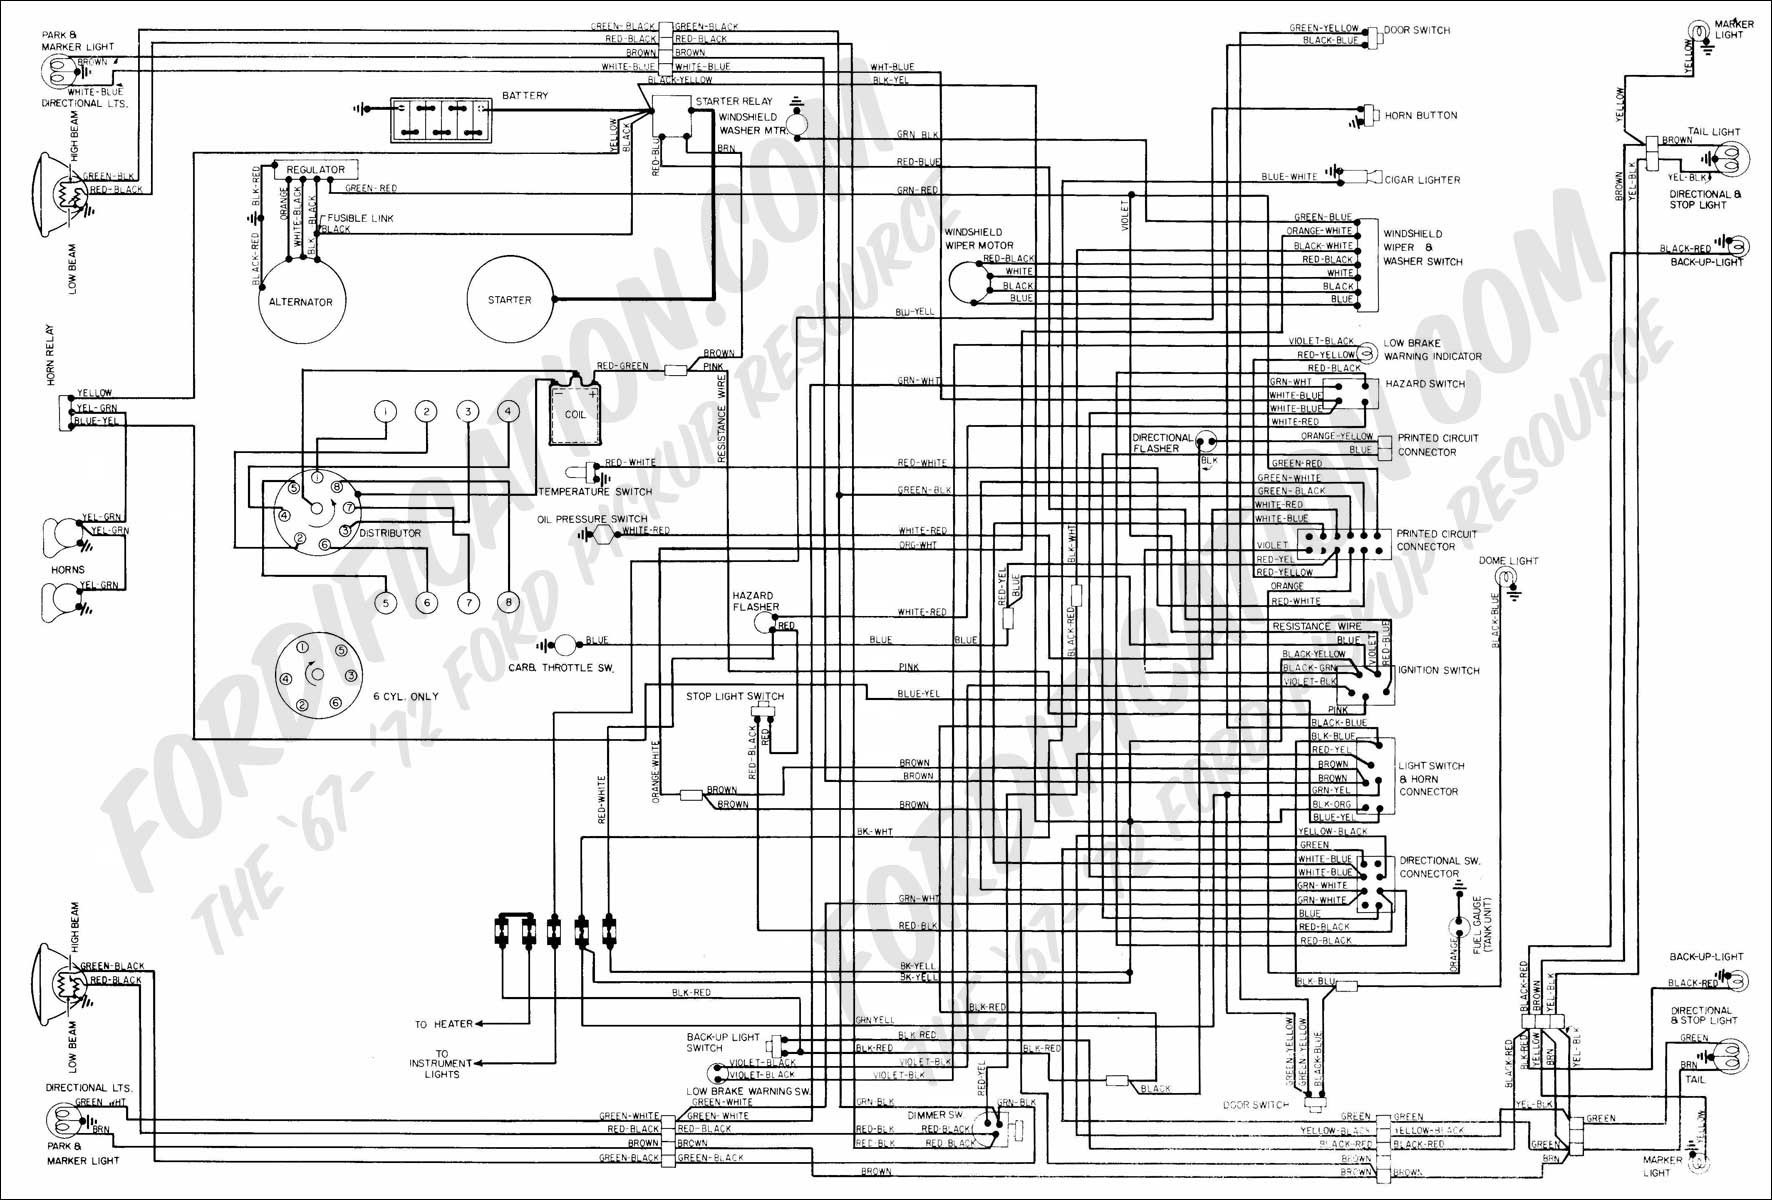 2005 ford Explorer 4 0 Engine Diagram 2005 ford F 350 Wiring Diagram Another Blog About Wiring Diagram • Of 2005 ford Explorer 4 0 Engine Diagram